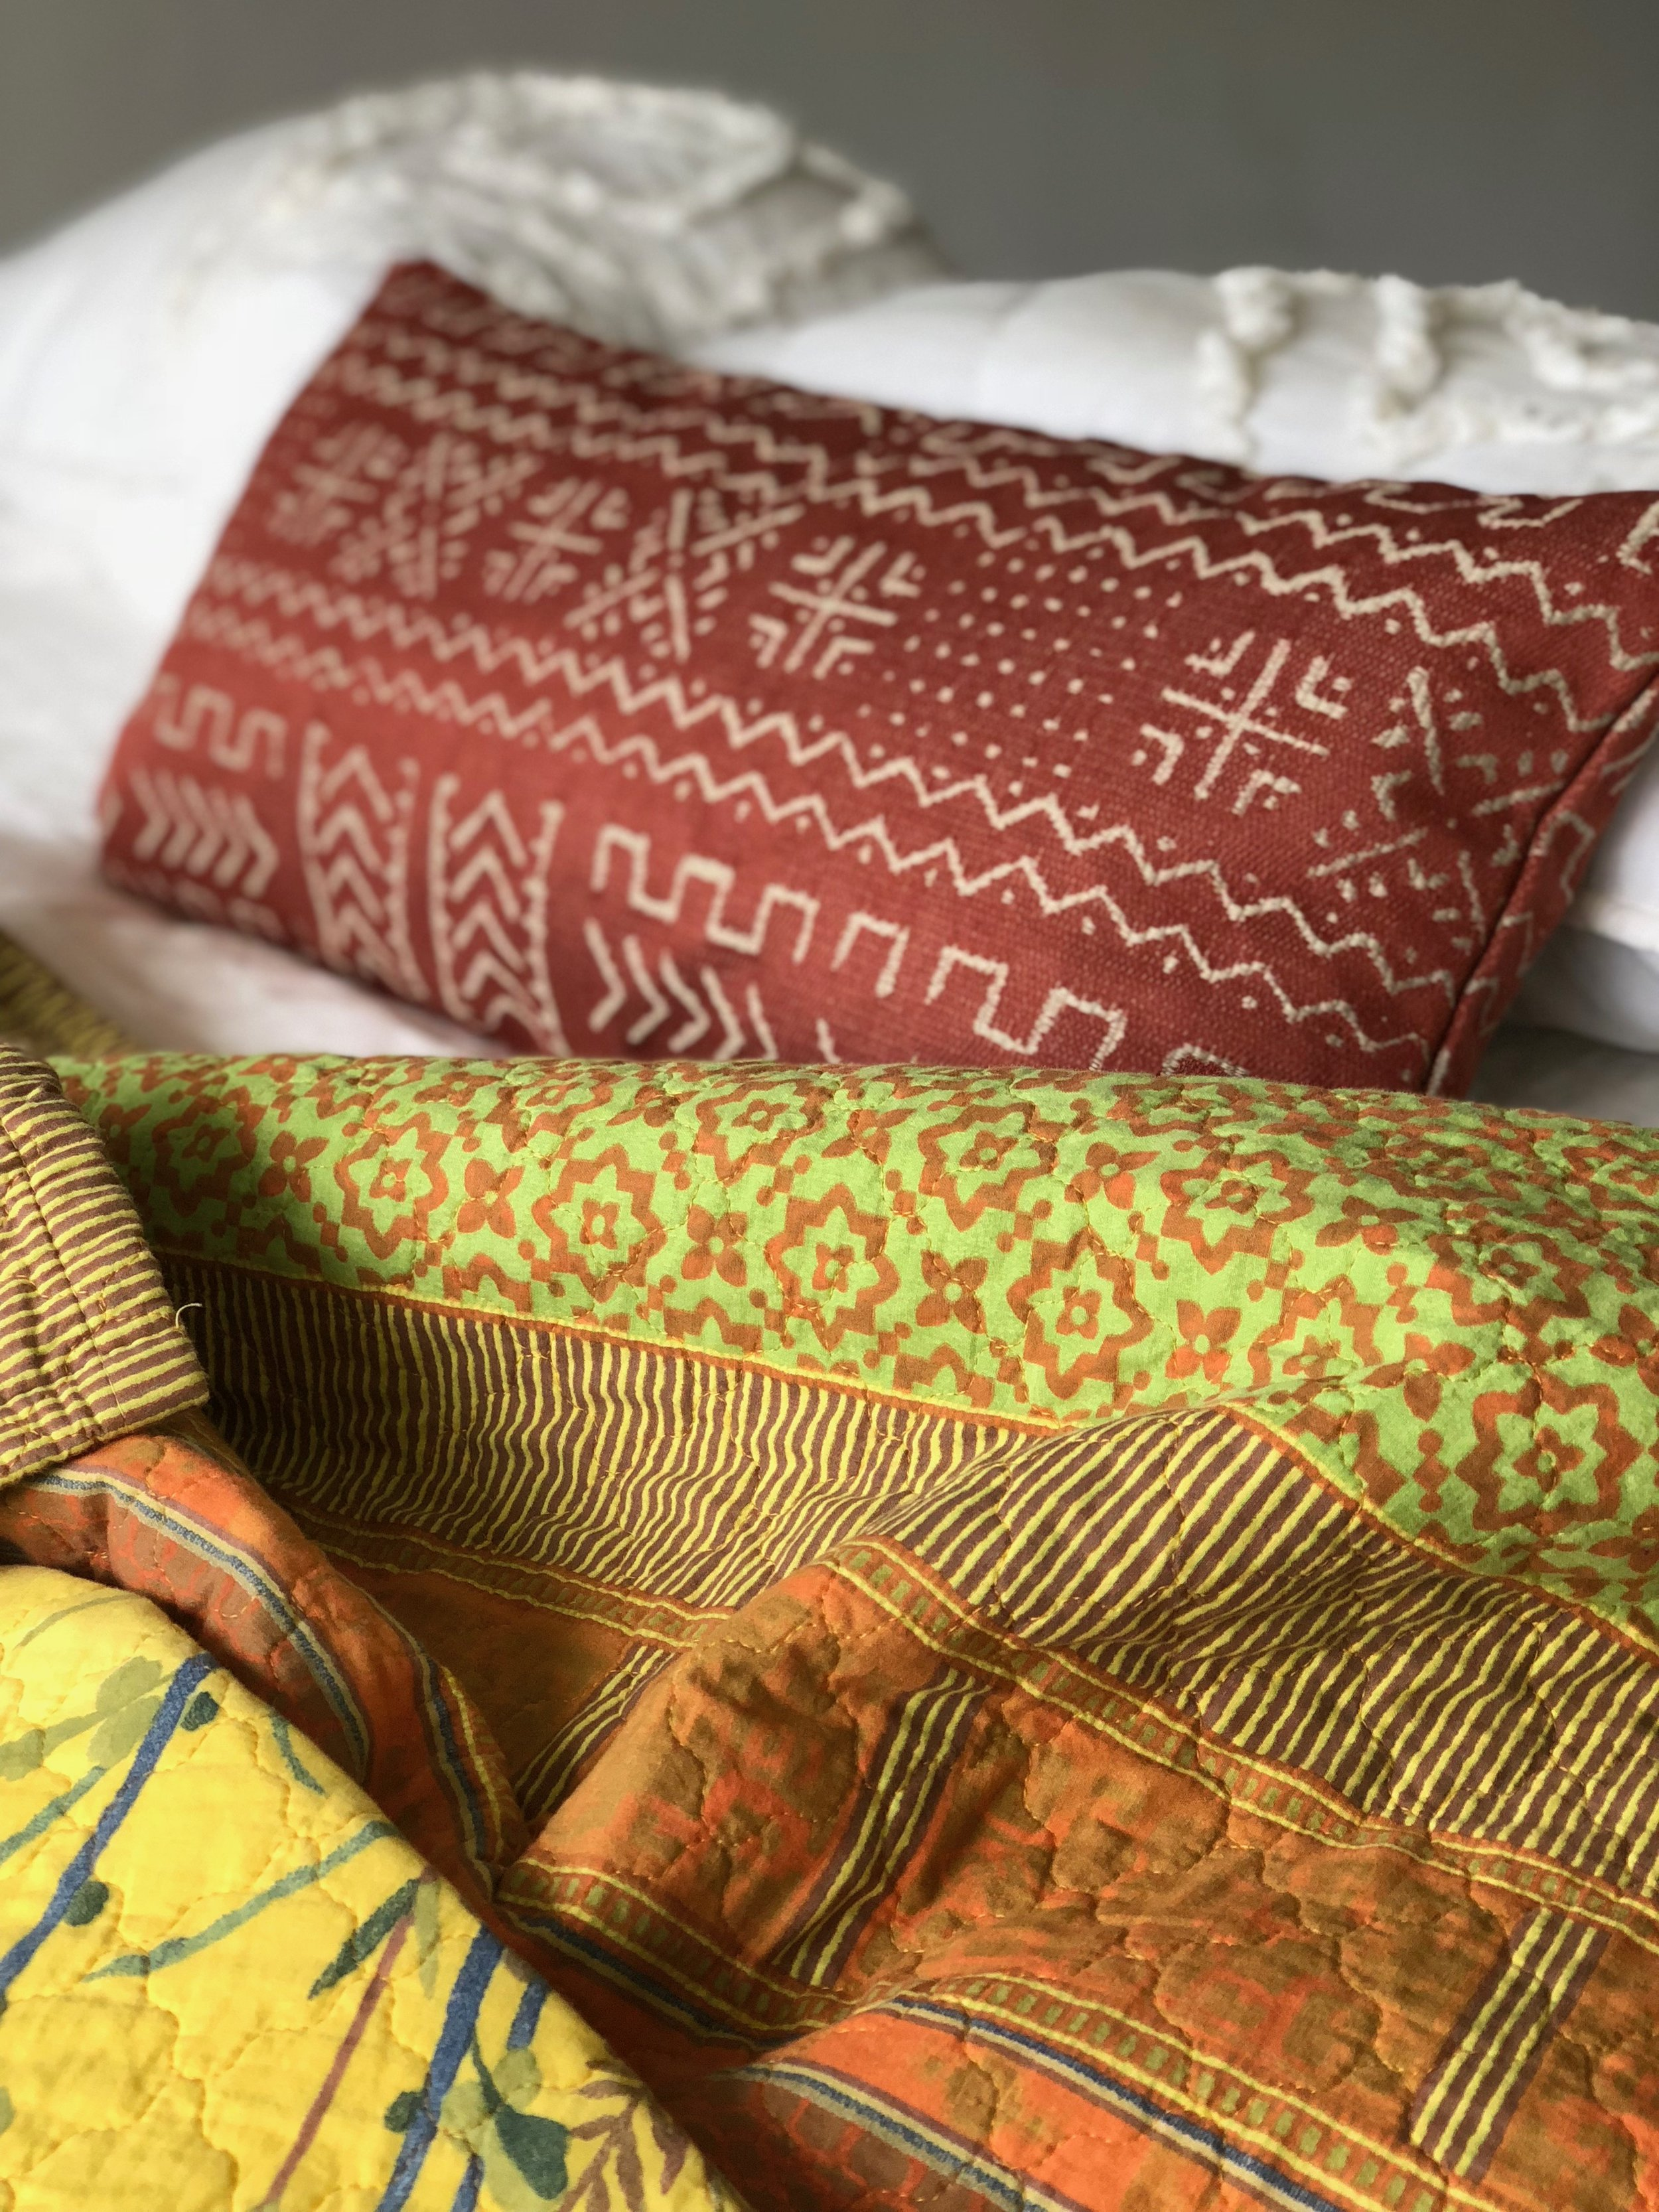 Paprika Arctic Lumbar Pillow - Mudcloth PillowsTrending now, these easy to clean cotton/linen pillows from India and Africa will transform your space with a global aesthetic. We love the way these transitional pillows fit both traditional and modern homes, making your decor pop!